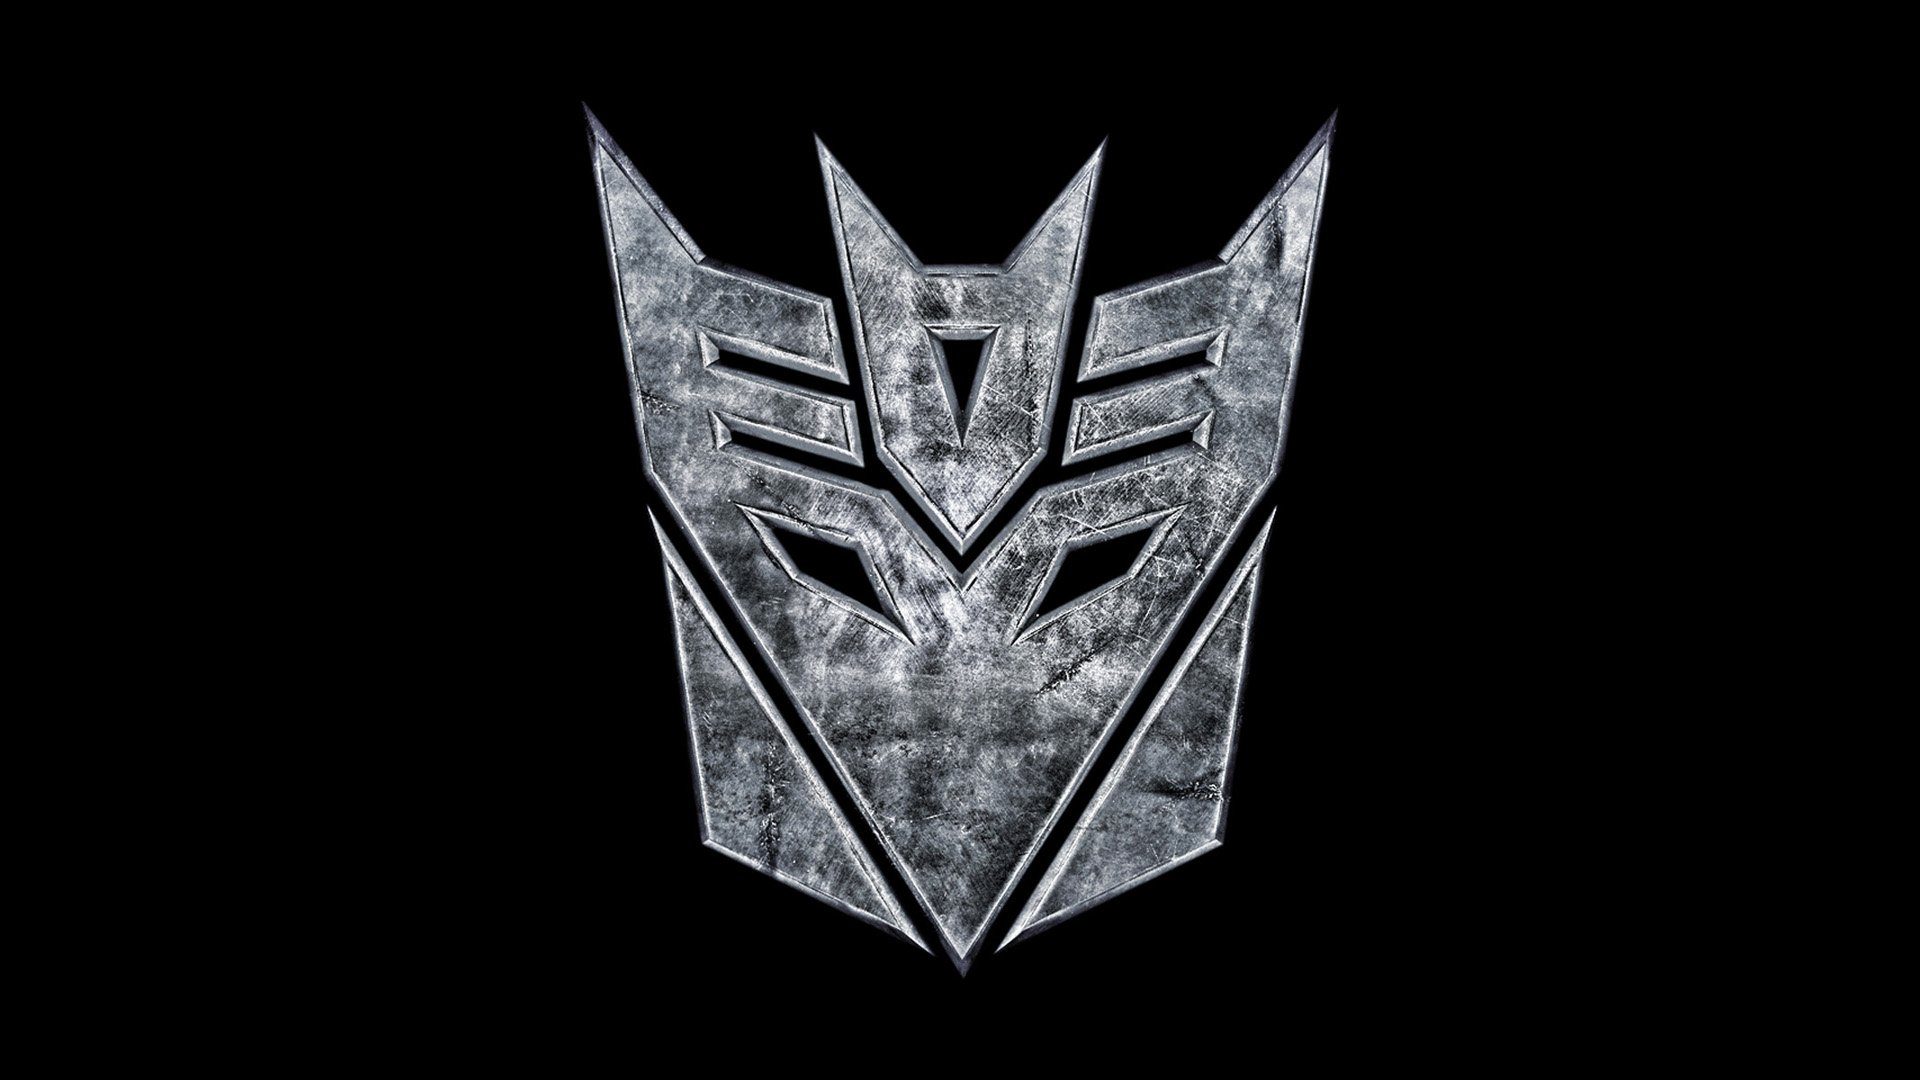 Transformers Wallpapers Best Wallpapers 1920x1080